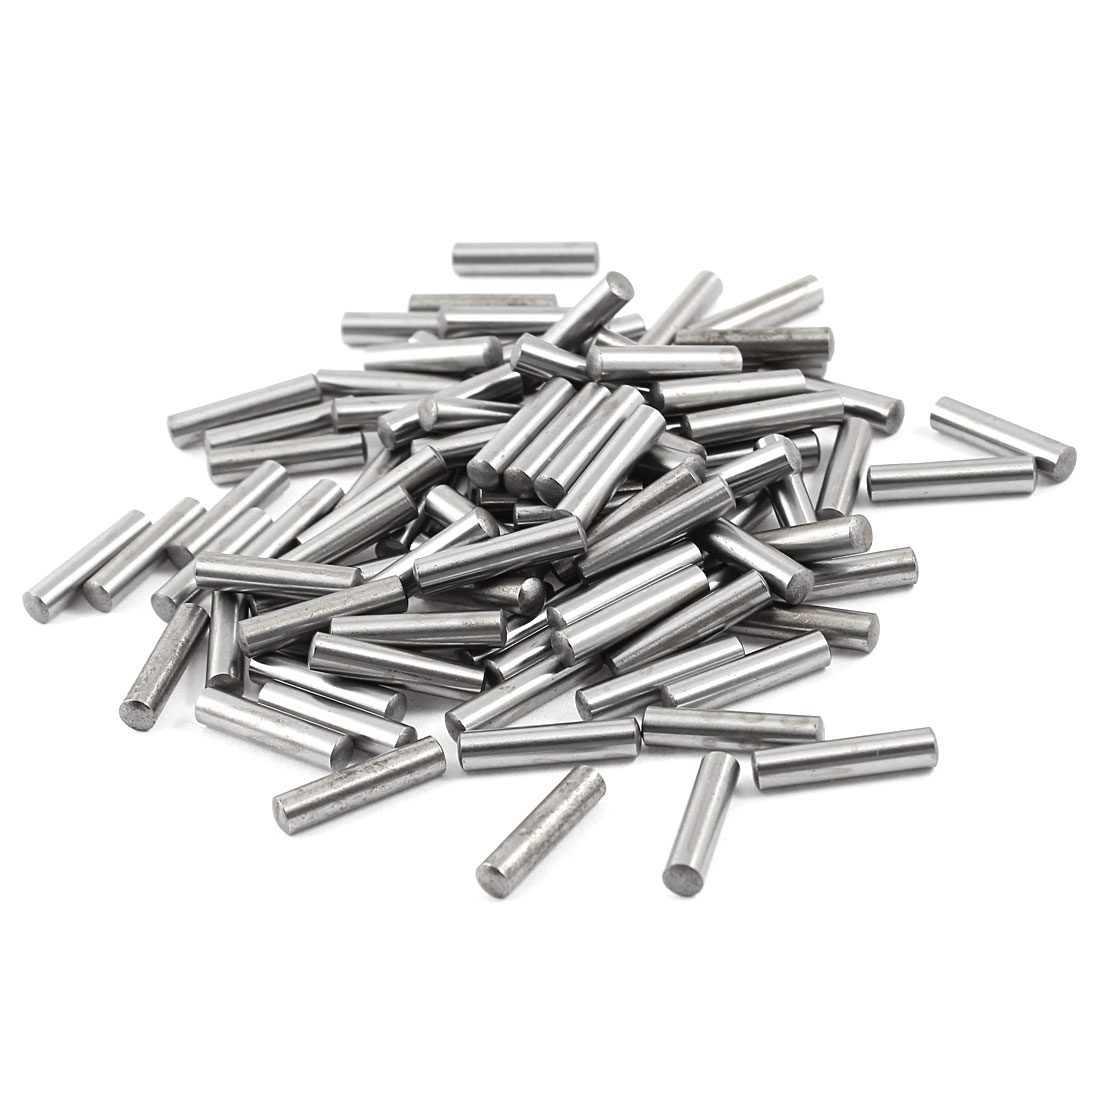 100 Pcs Stainless Steel 4.3mm x 19.8mm Parallel Dowel Pins Fasten Elements Silver Tone